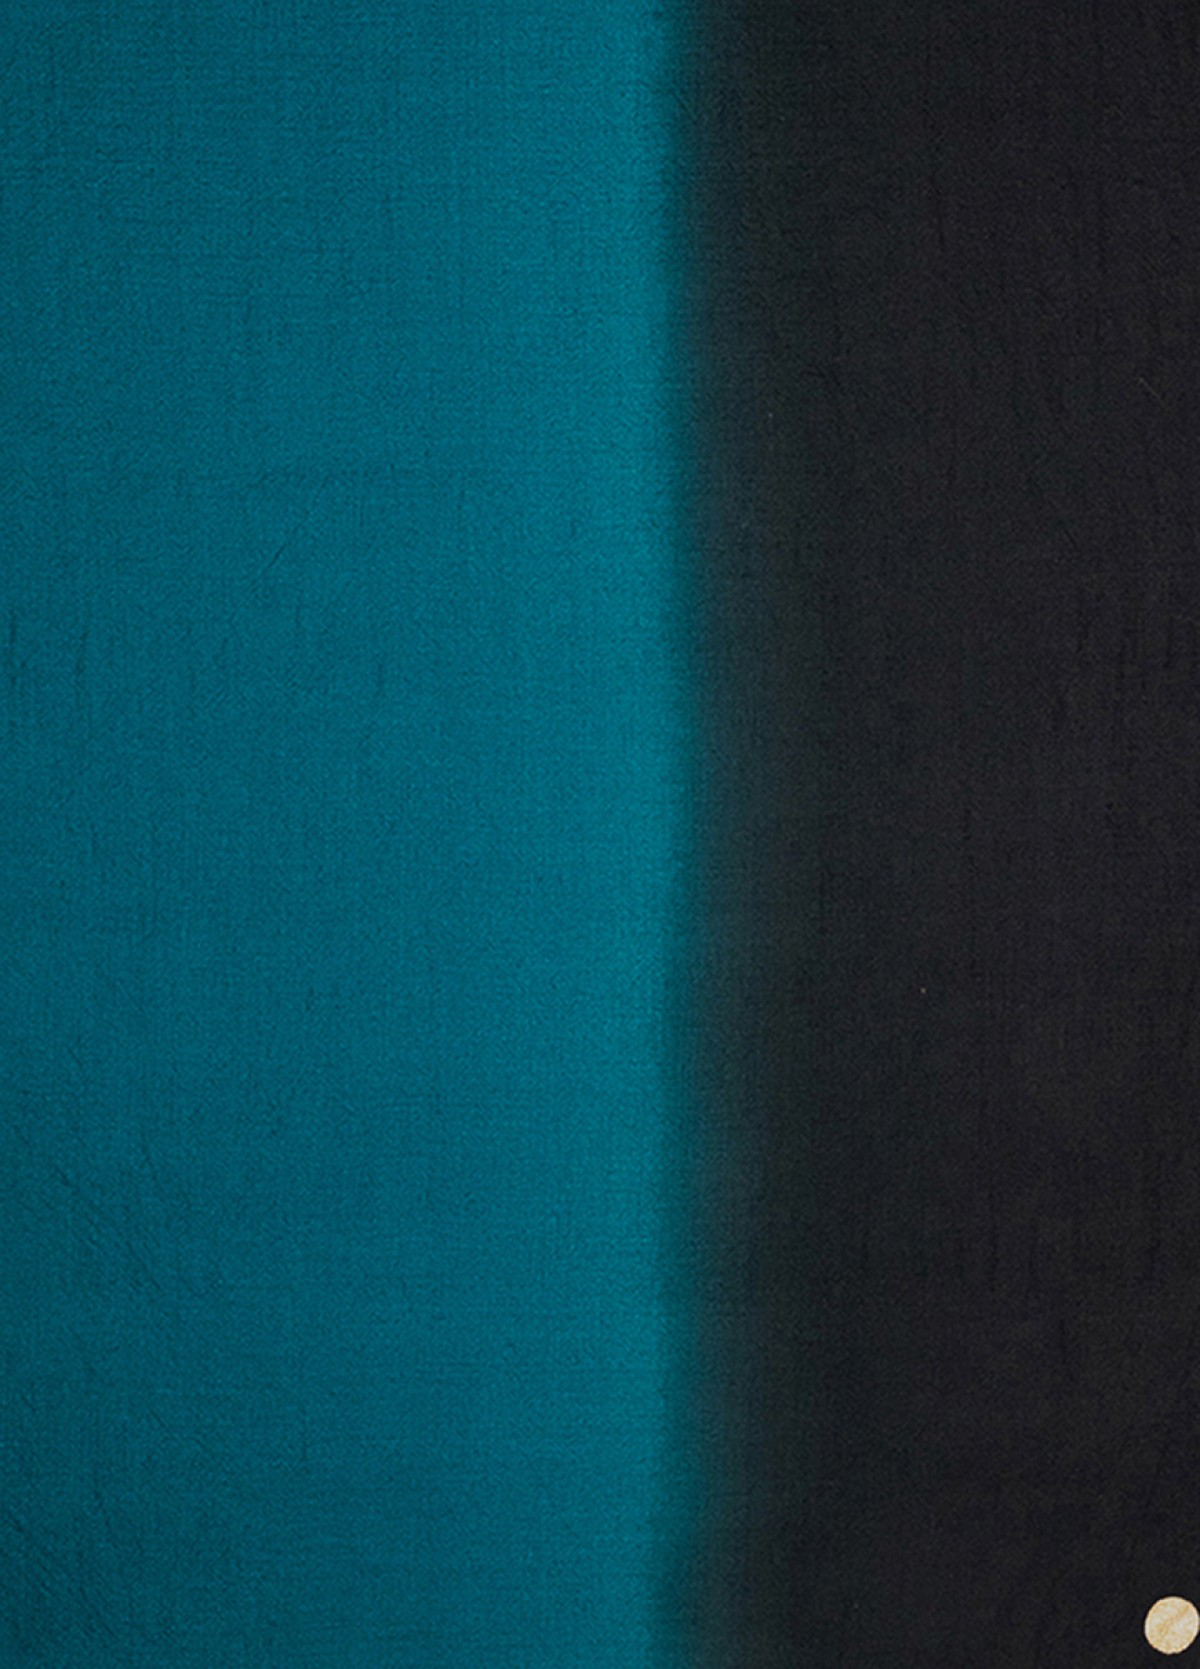 The Turquoise Blue Cashmere Stole